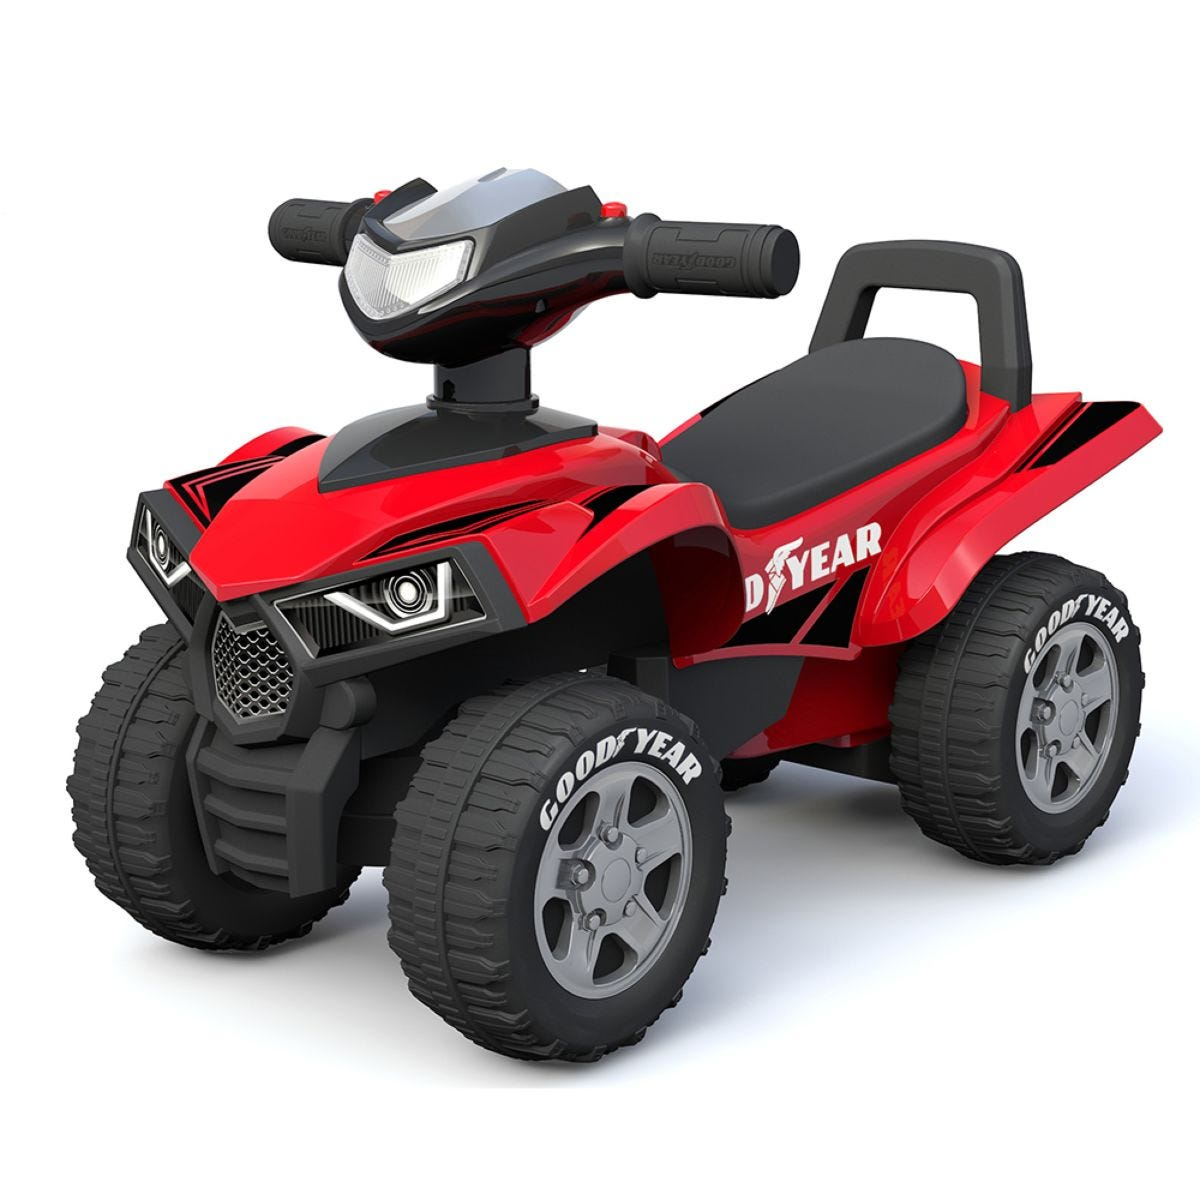 Goodyear Foot to Floor Quad Bike - Red